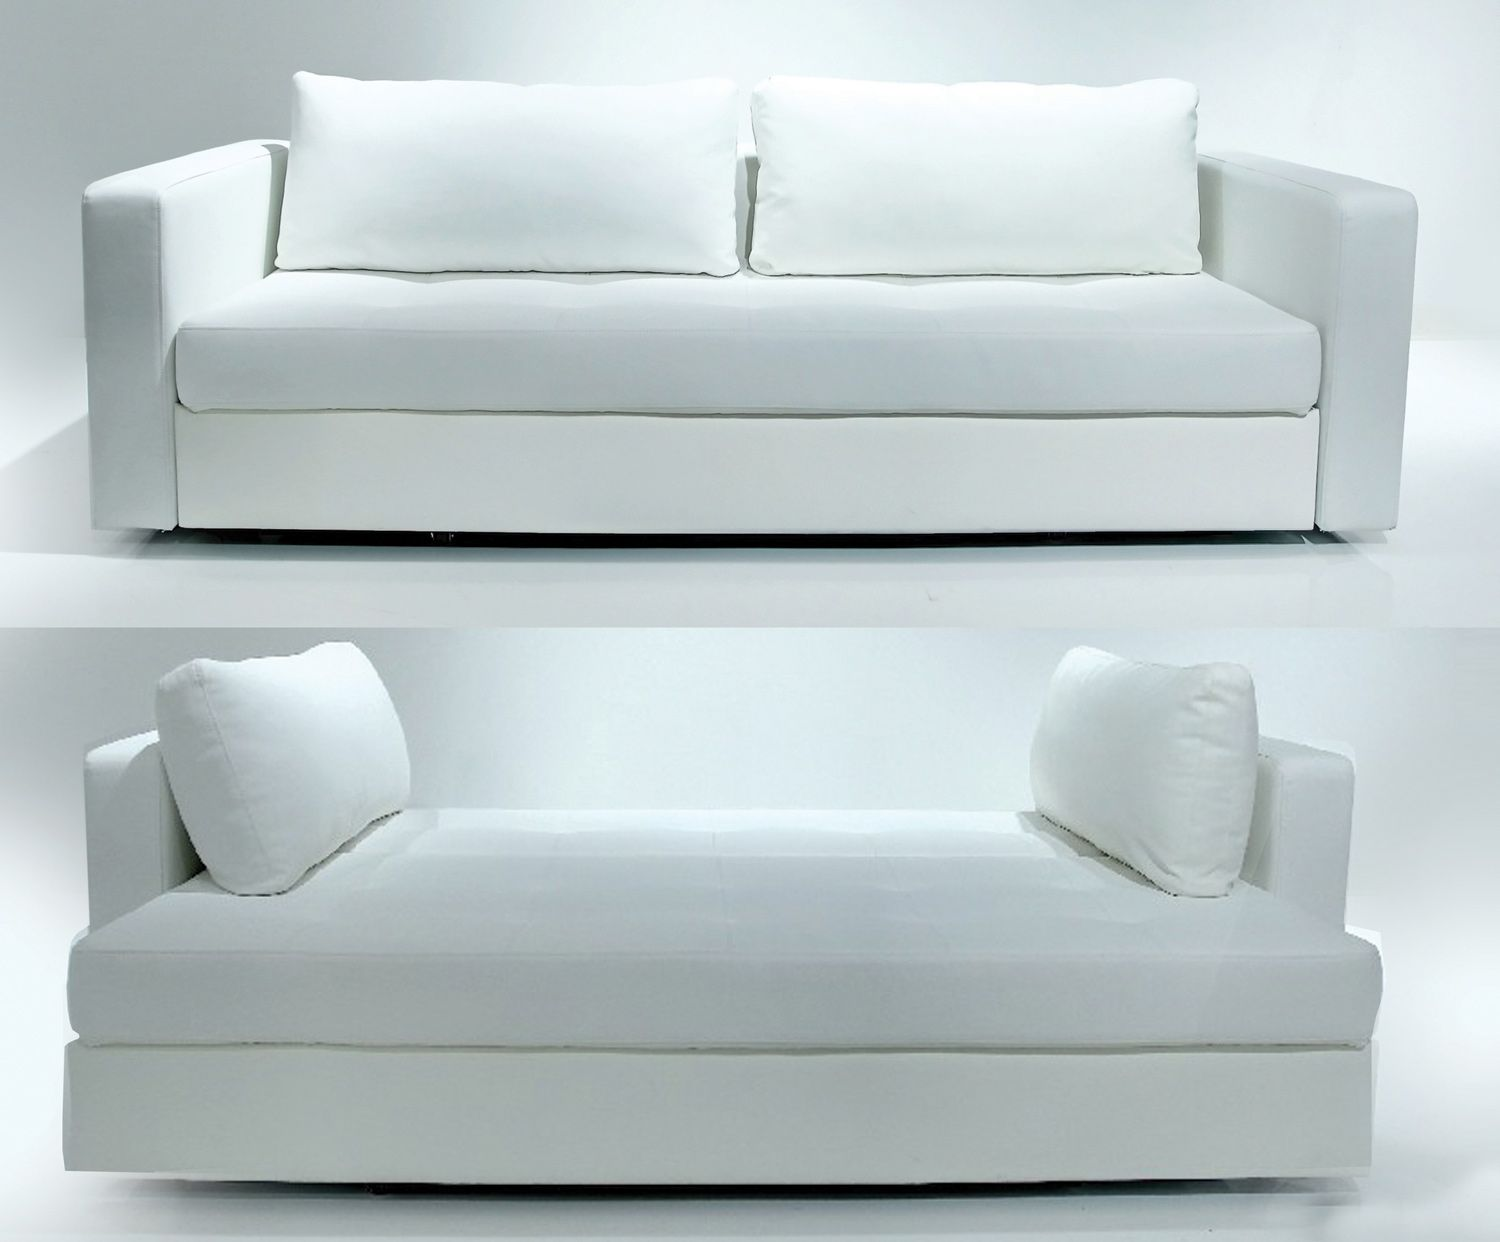 Bifold Sliding Leather Sofabed White Sofa Bed Contemporary Furniture Stores Small Size Sofa